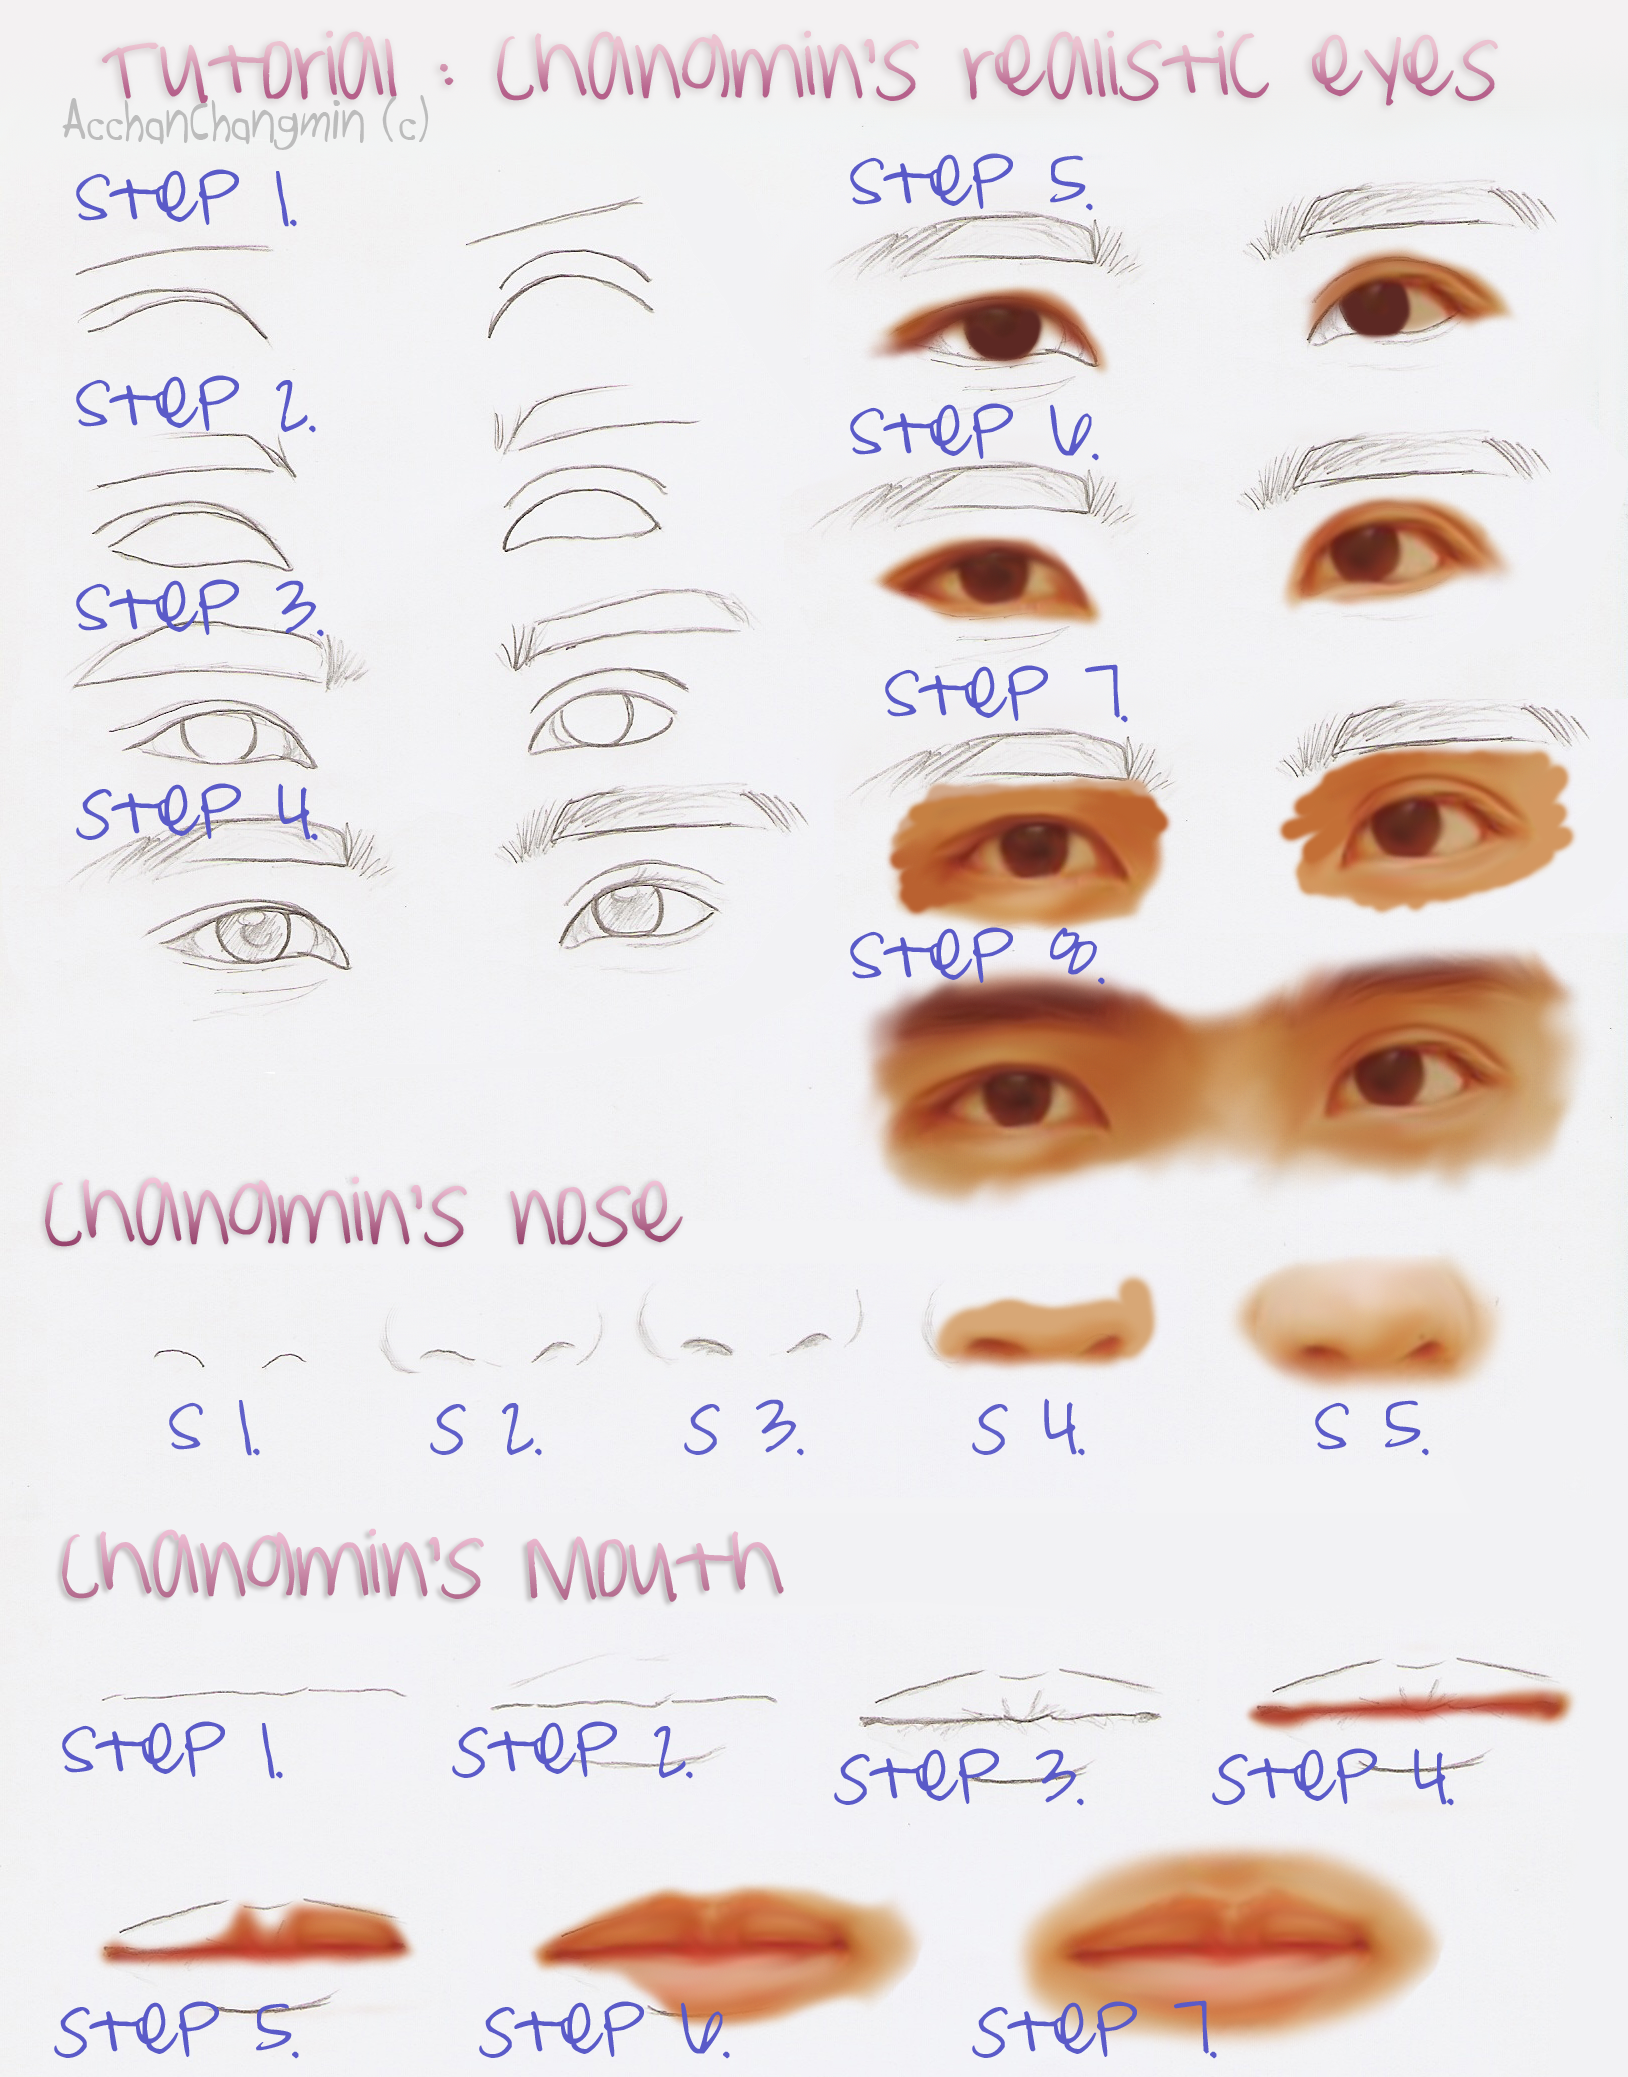 Tutorial: Changmin's details by AcchanChangmin